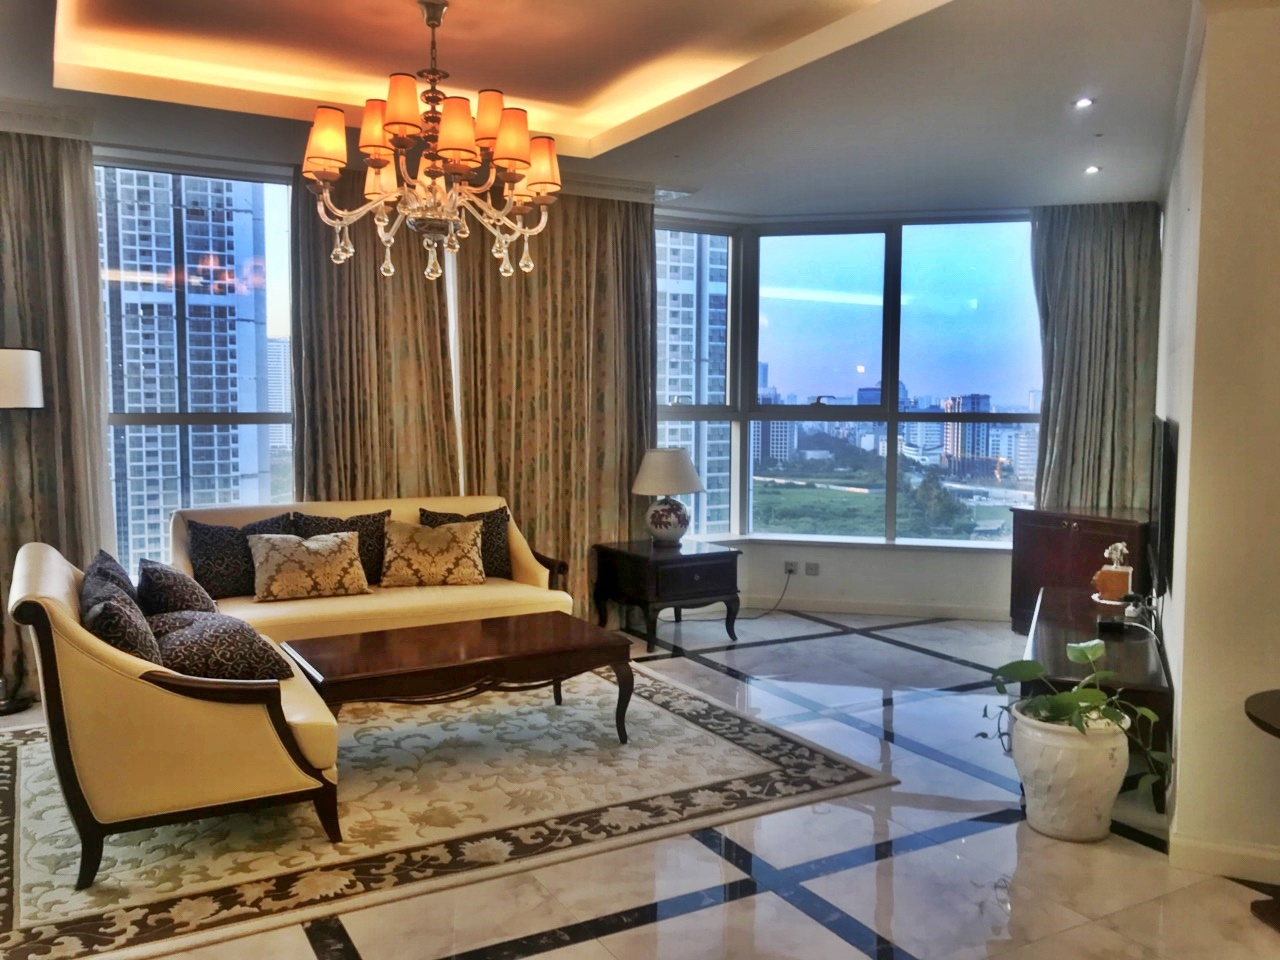 Luxury Keangnam Hanoi Apartment for rent